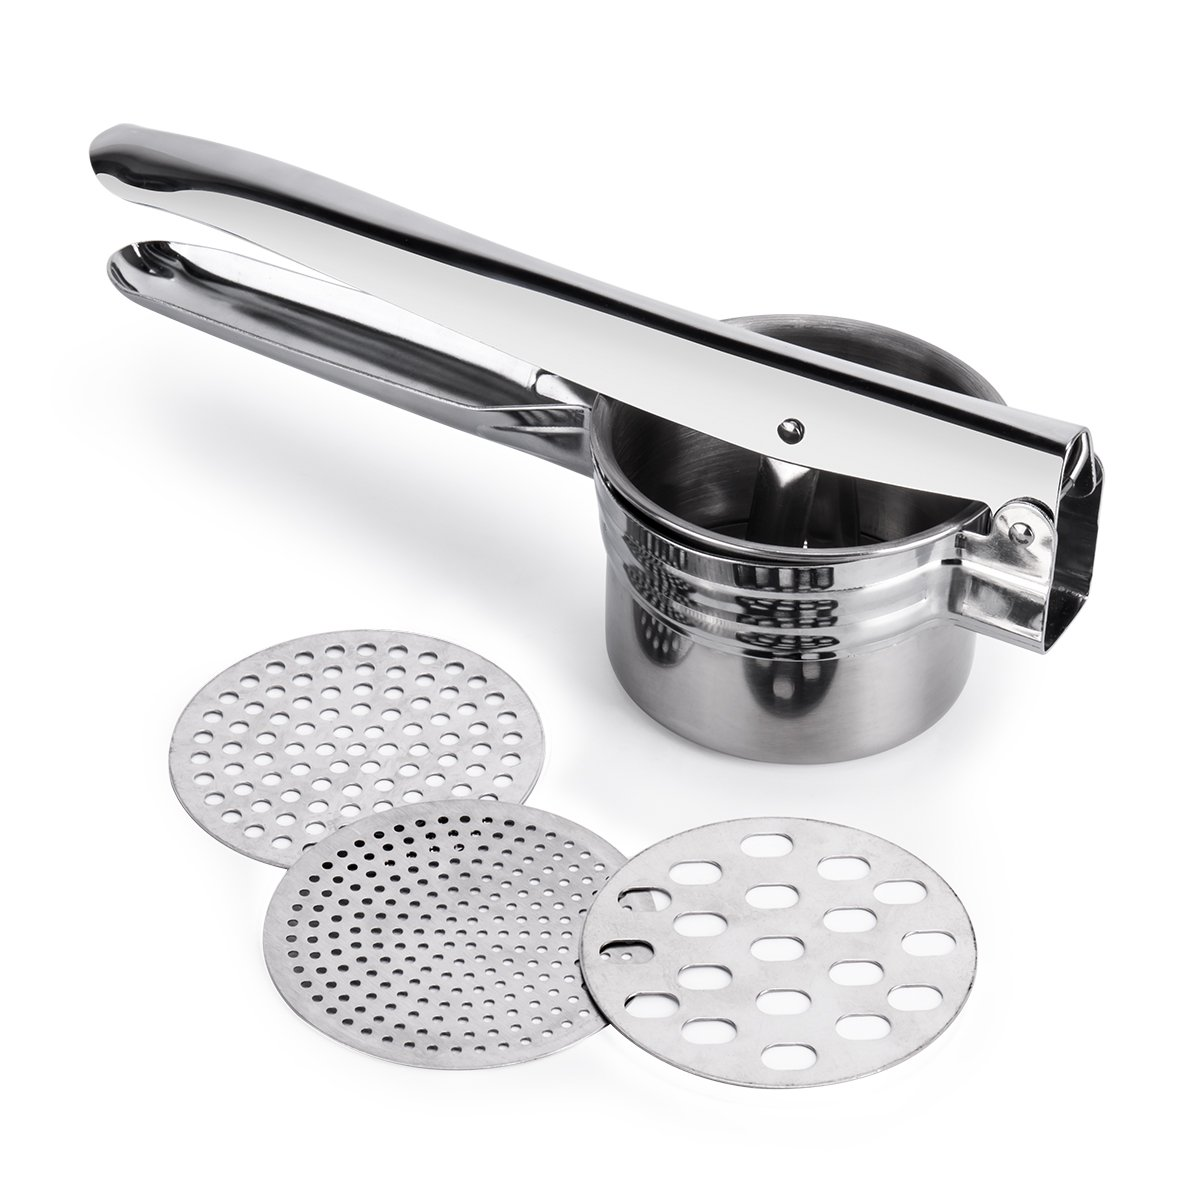 BeautyKitchen Stainless Steel Potato Ricer with 3 Interchangeable Disks by BeautyKitchen (Image #1)